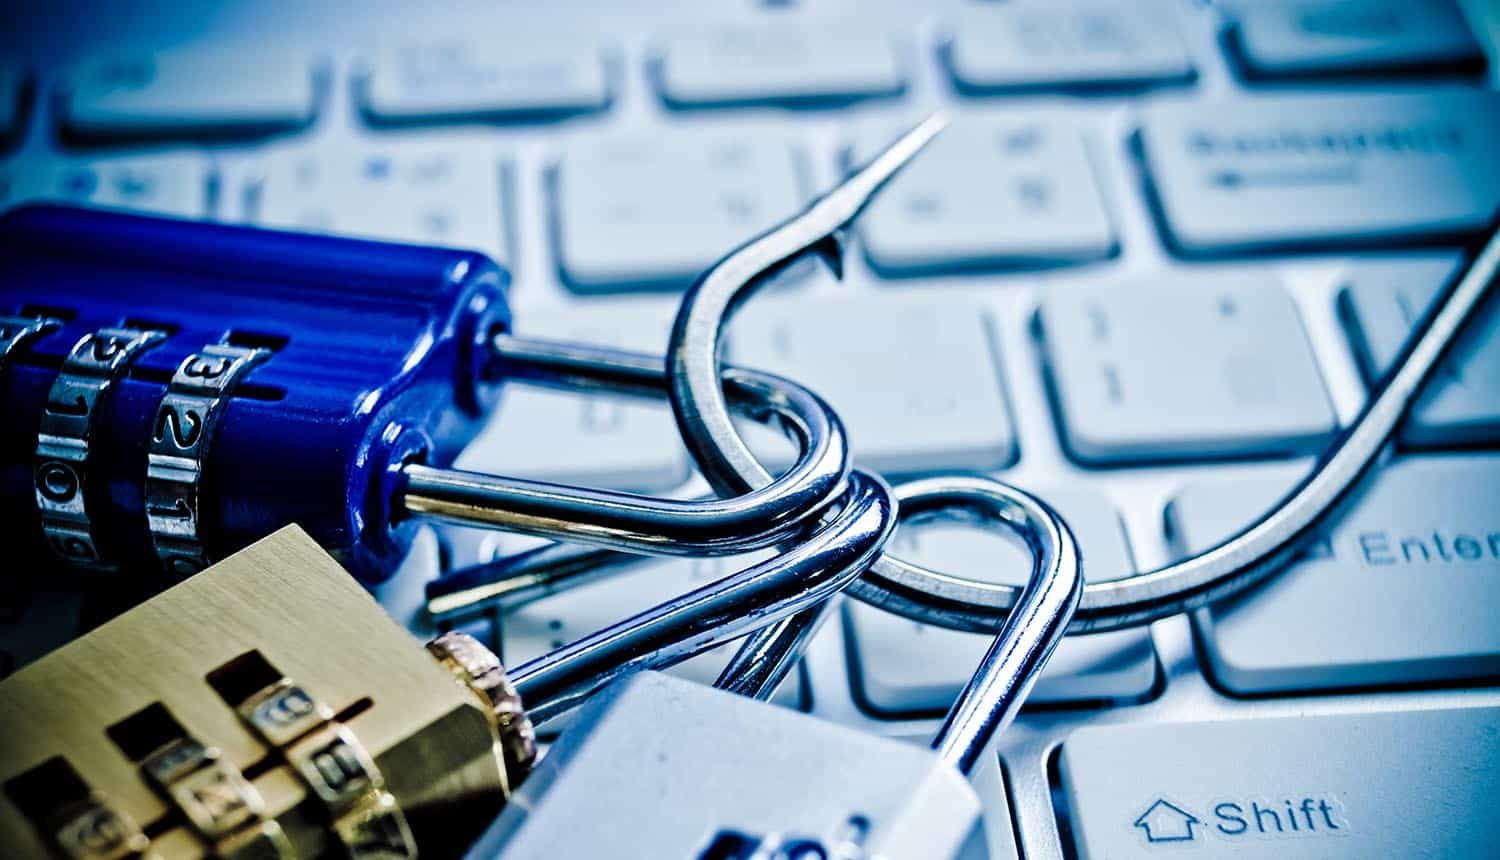 Security locks with a fish hook on computer keyboard showing credential phishing using compromised accounts